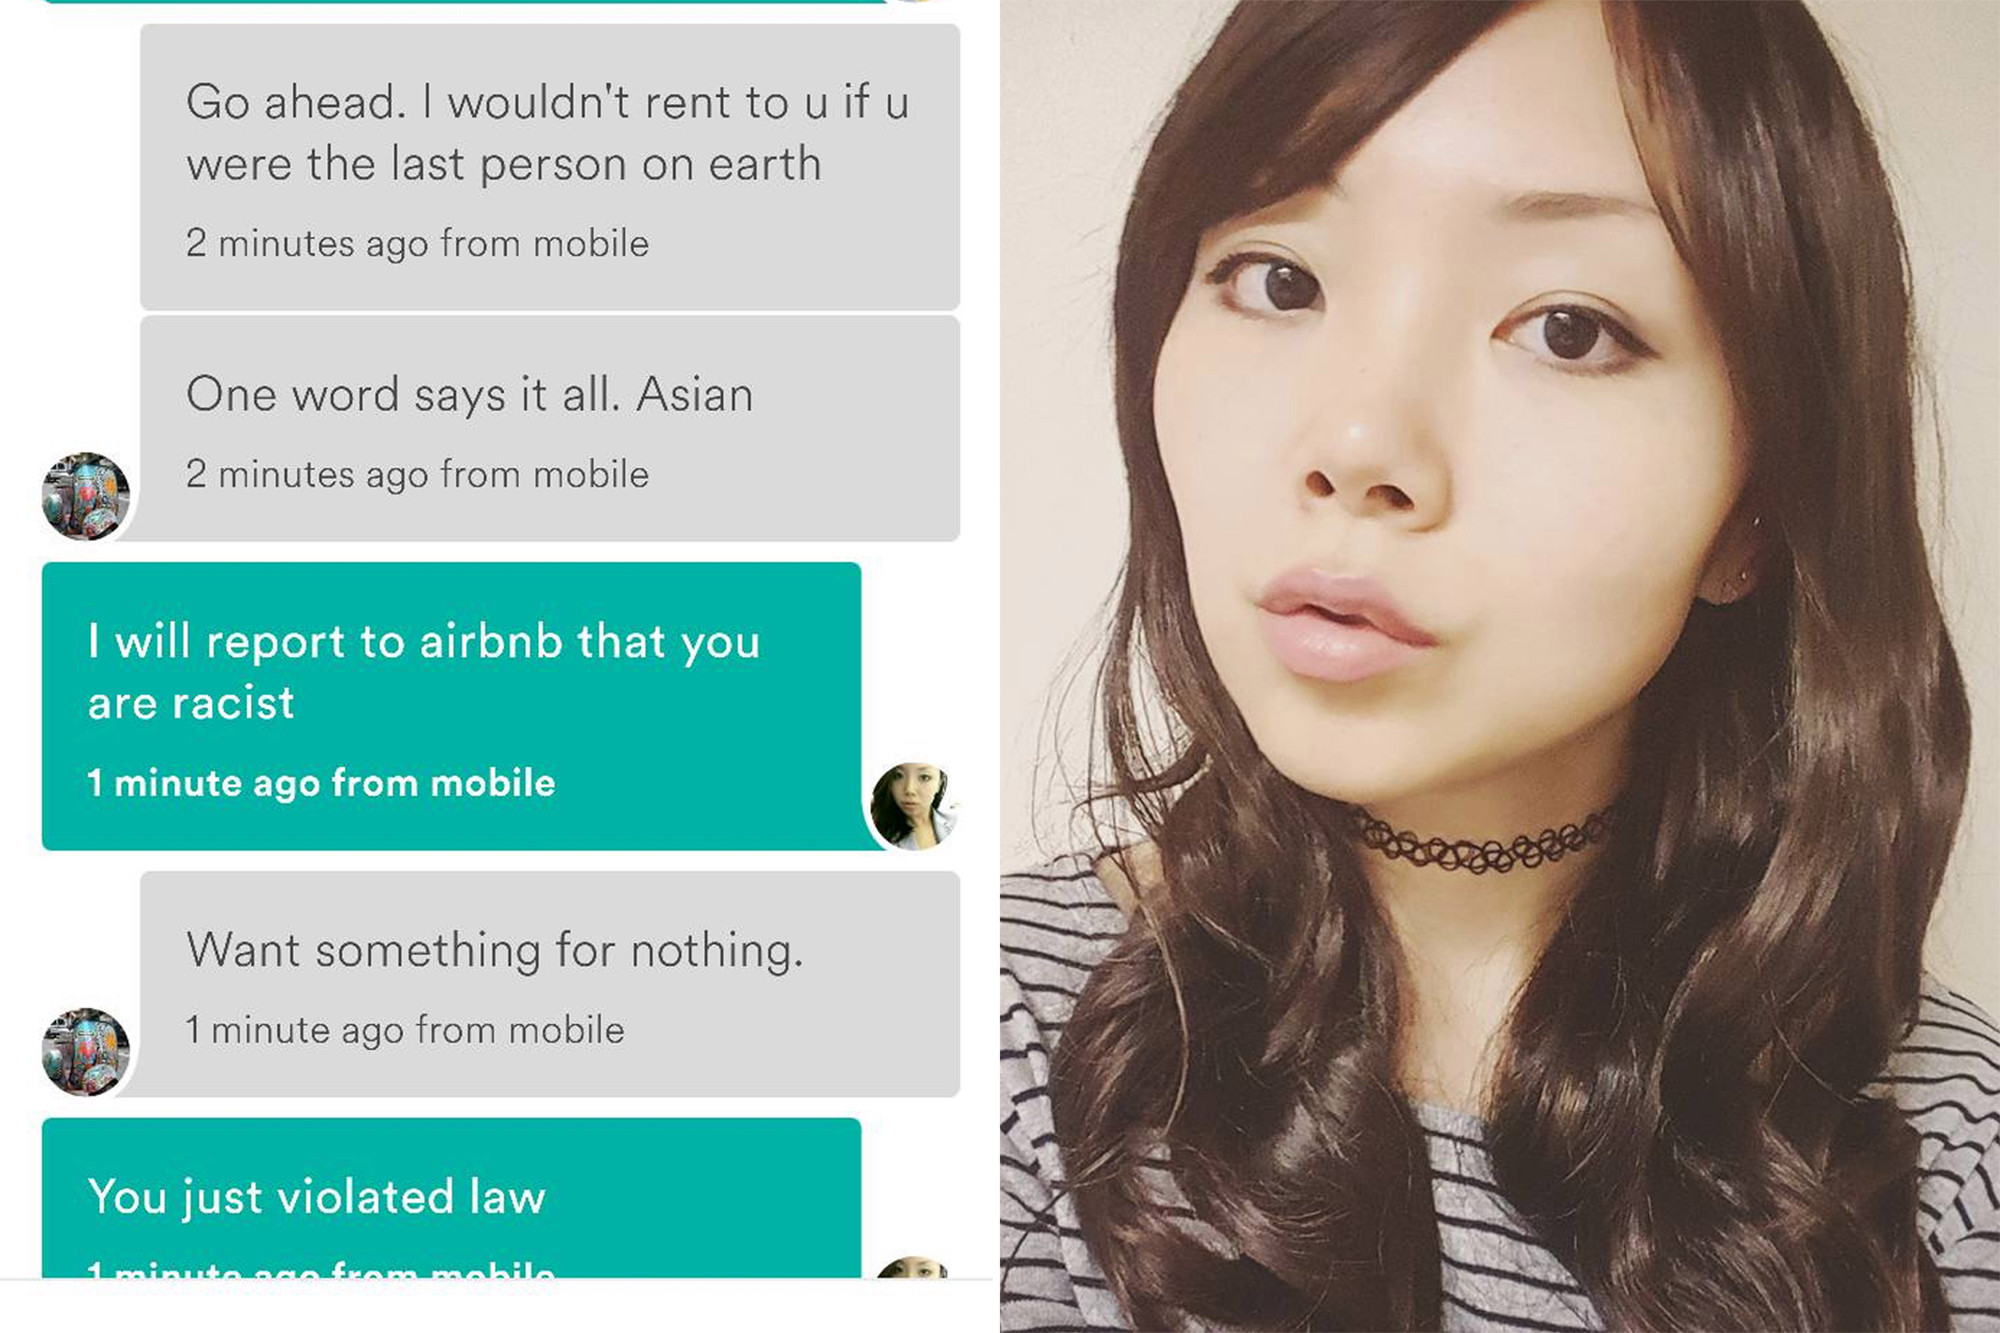 Racist Airbnb Host is Fined $5000 and Must Take an Asian American